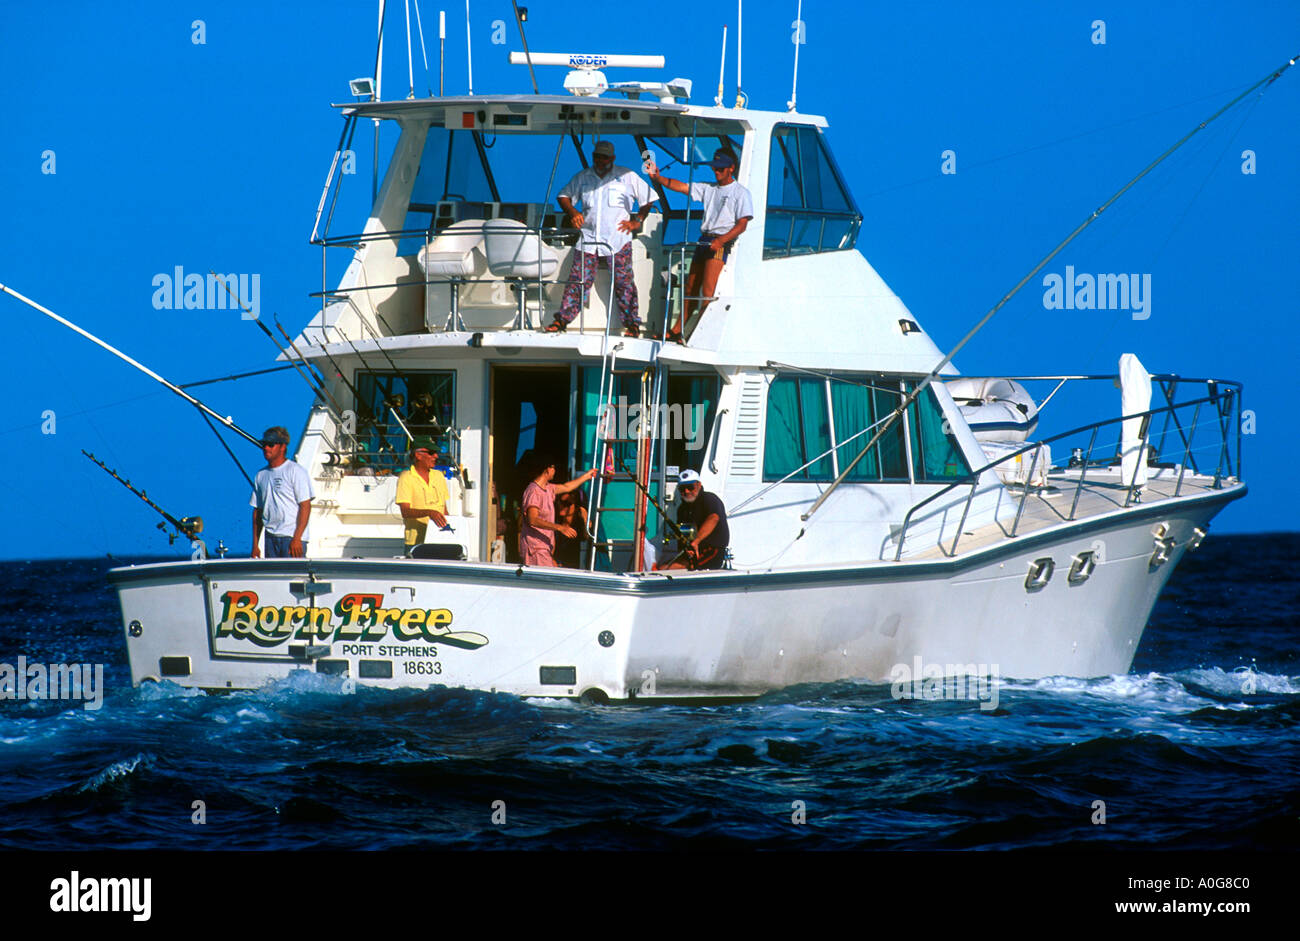 Big game fishing boat trolling near great barrier reef off for Boat fishing games